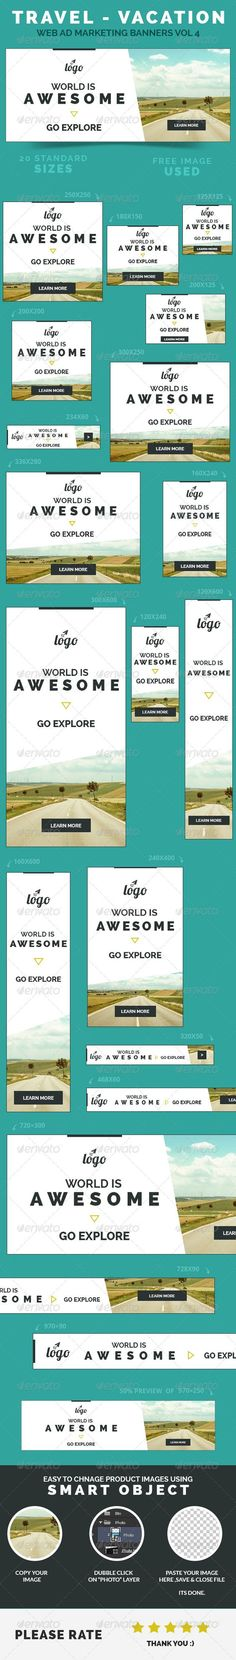 Travel - Vacation Web Ad Marketing Banners Template PSD | Buy and Download: http://graphicriver.net/item/travel-vacation-web-ad-marketing-banners-vol-4/8500668?WT.ac=category_thumb&WT.z_author=webduck&ref=ksioks: